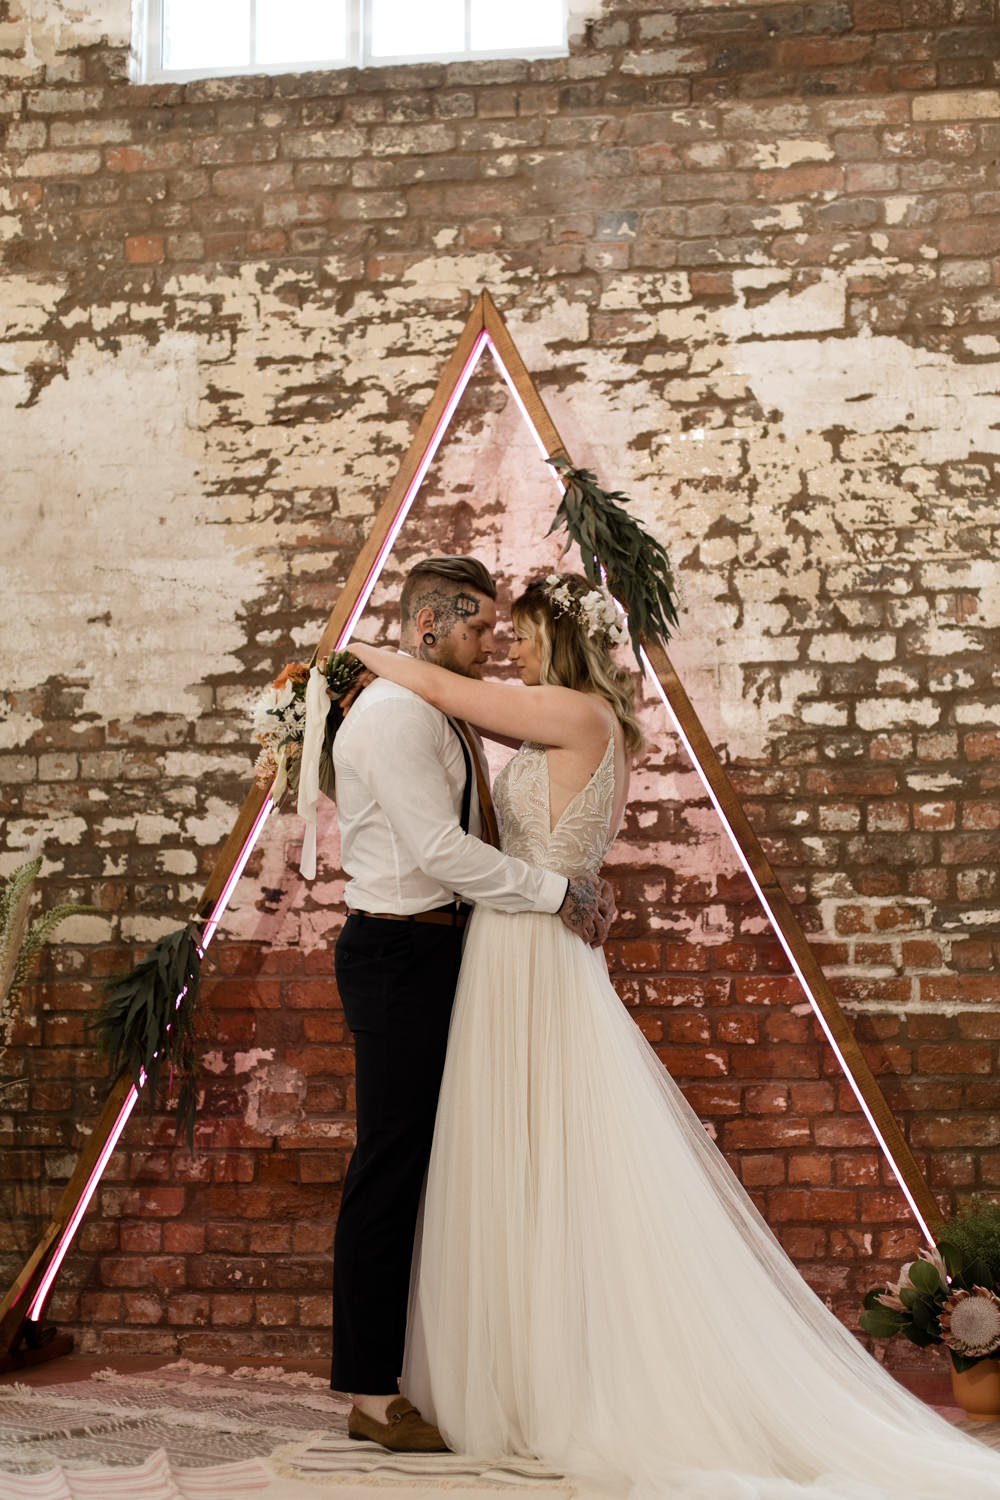 Triangle Backdrop Wooden Frame Neon Lighting Ceremony Greenery Foliage Moroccan Wedding Ideas Emma Louise Photography